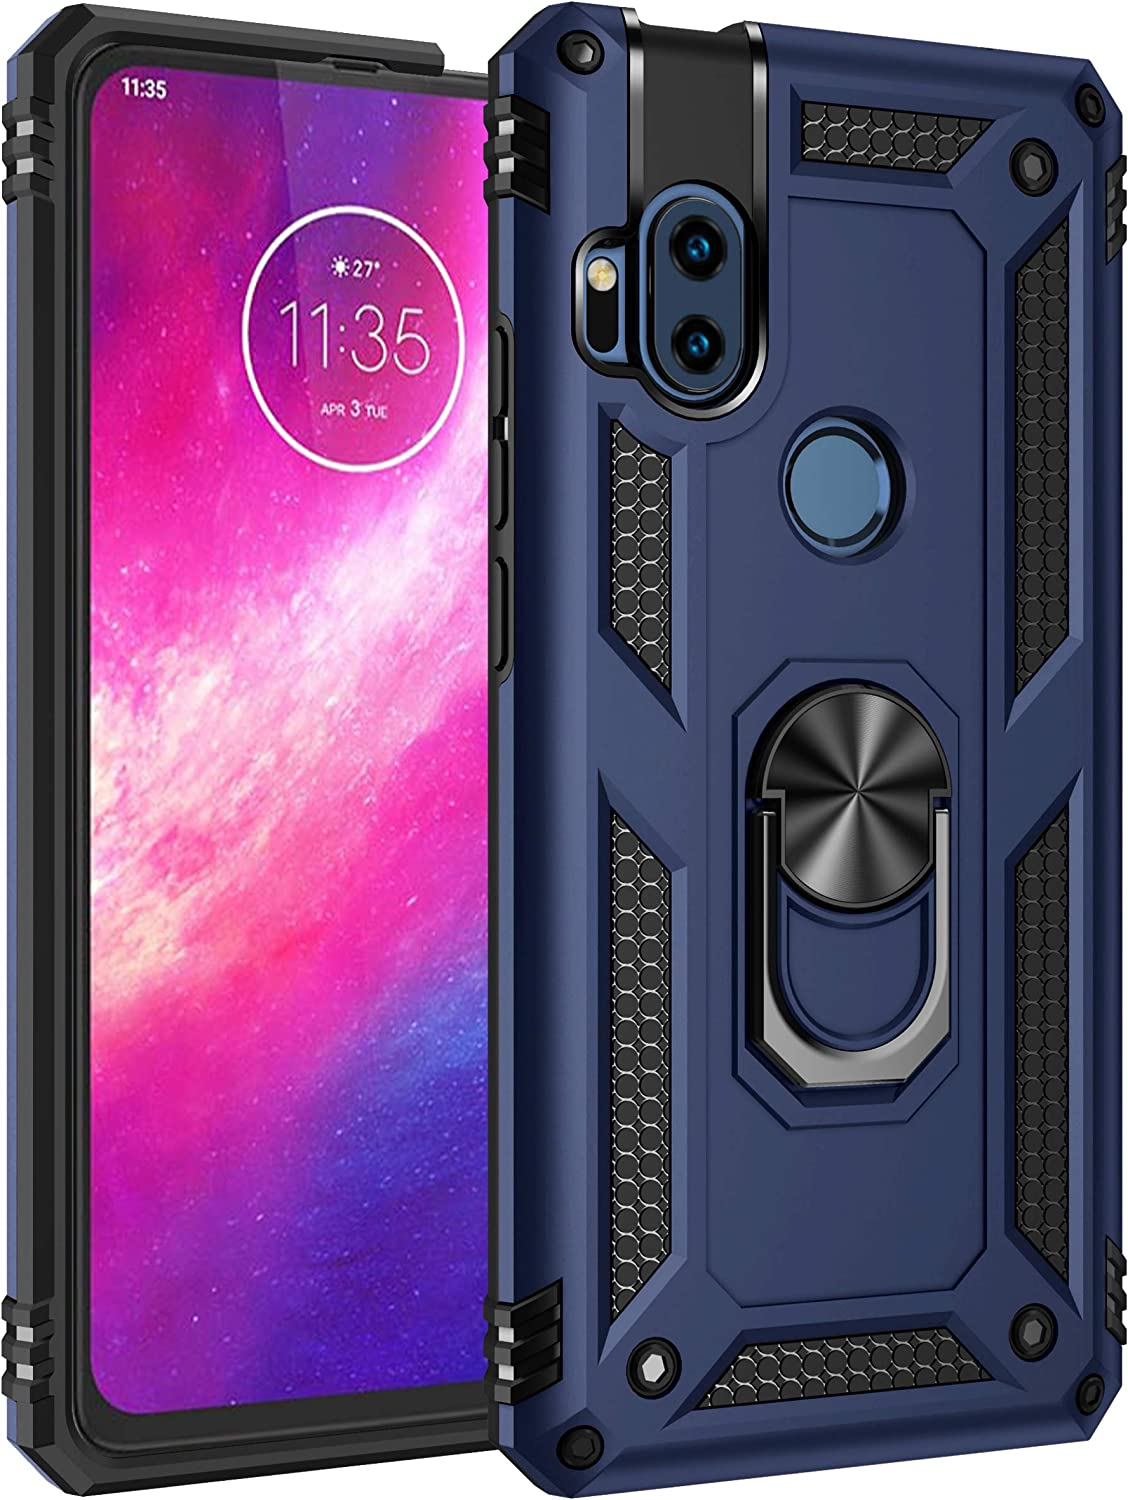 LEMAXELERS Motorola One Hyper Case Shockproof Duty Dual Layer Case with 360 Degree Rotating Ring Holder Kickstand Armor Magnetic Car Mount Protective Cover for Motorola One Hyper Blue AC